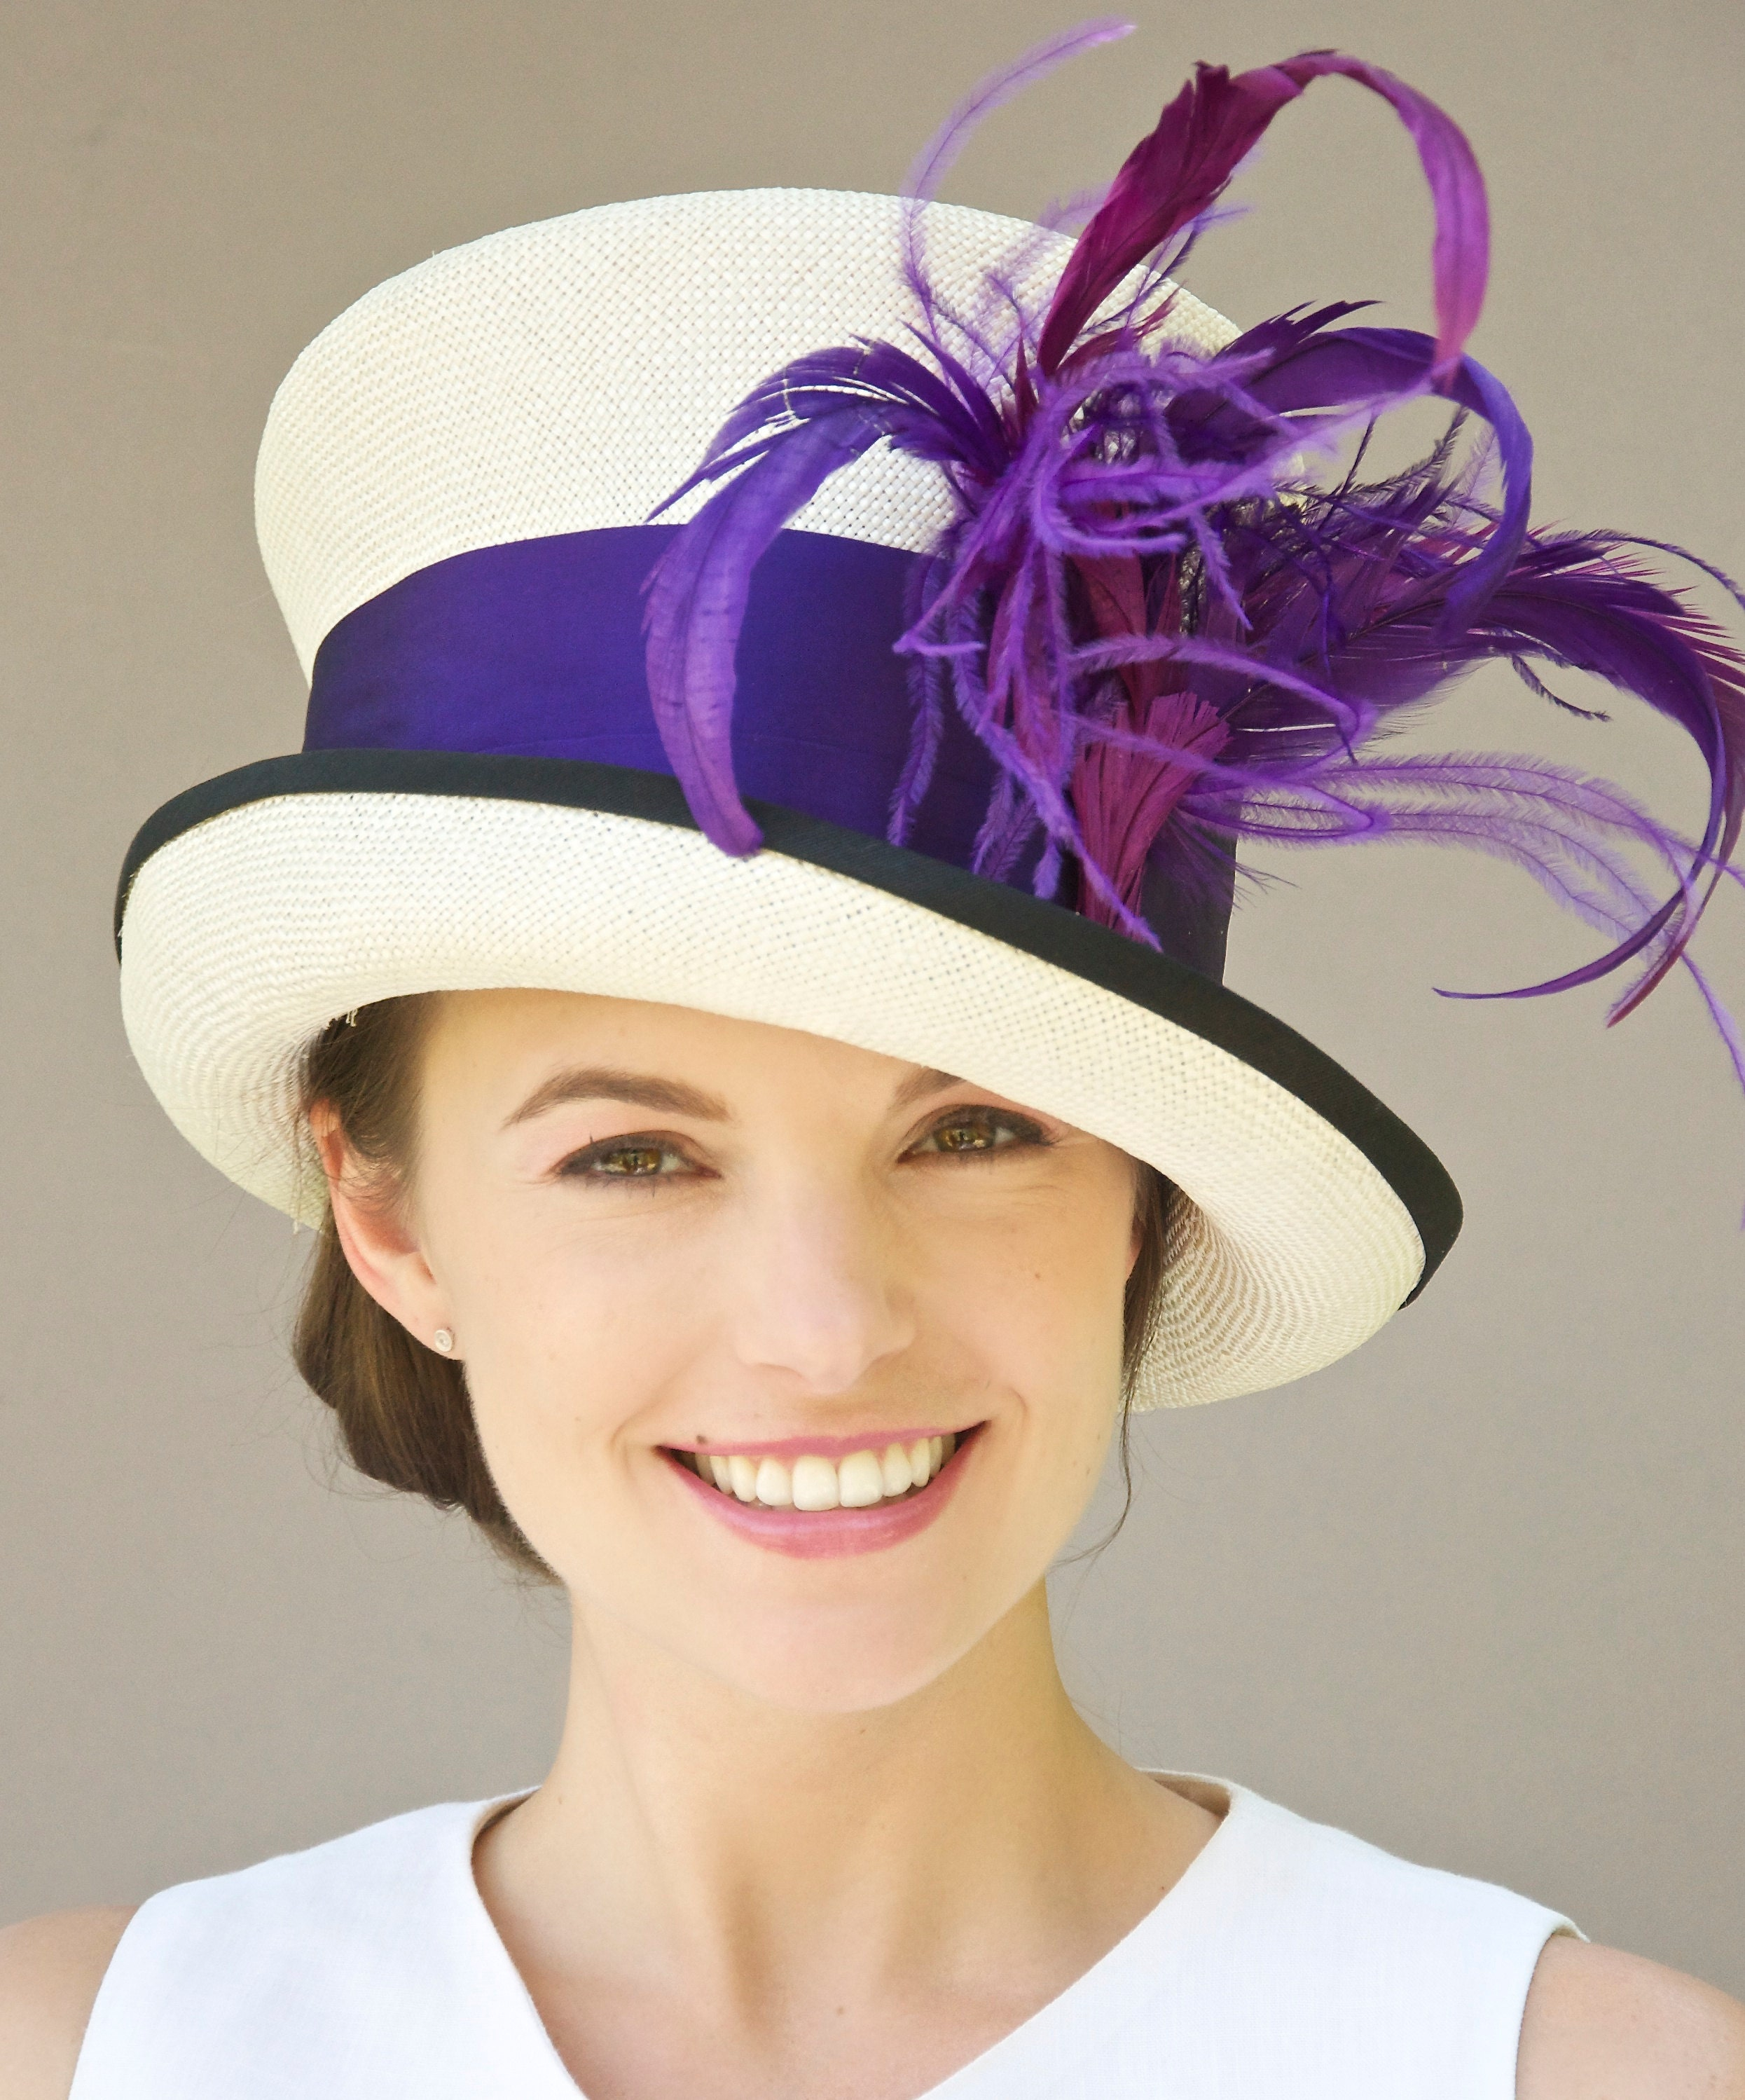 1fb441587df 4th Millinery Design (Hats) - Lessons - Tes Teach